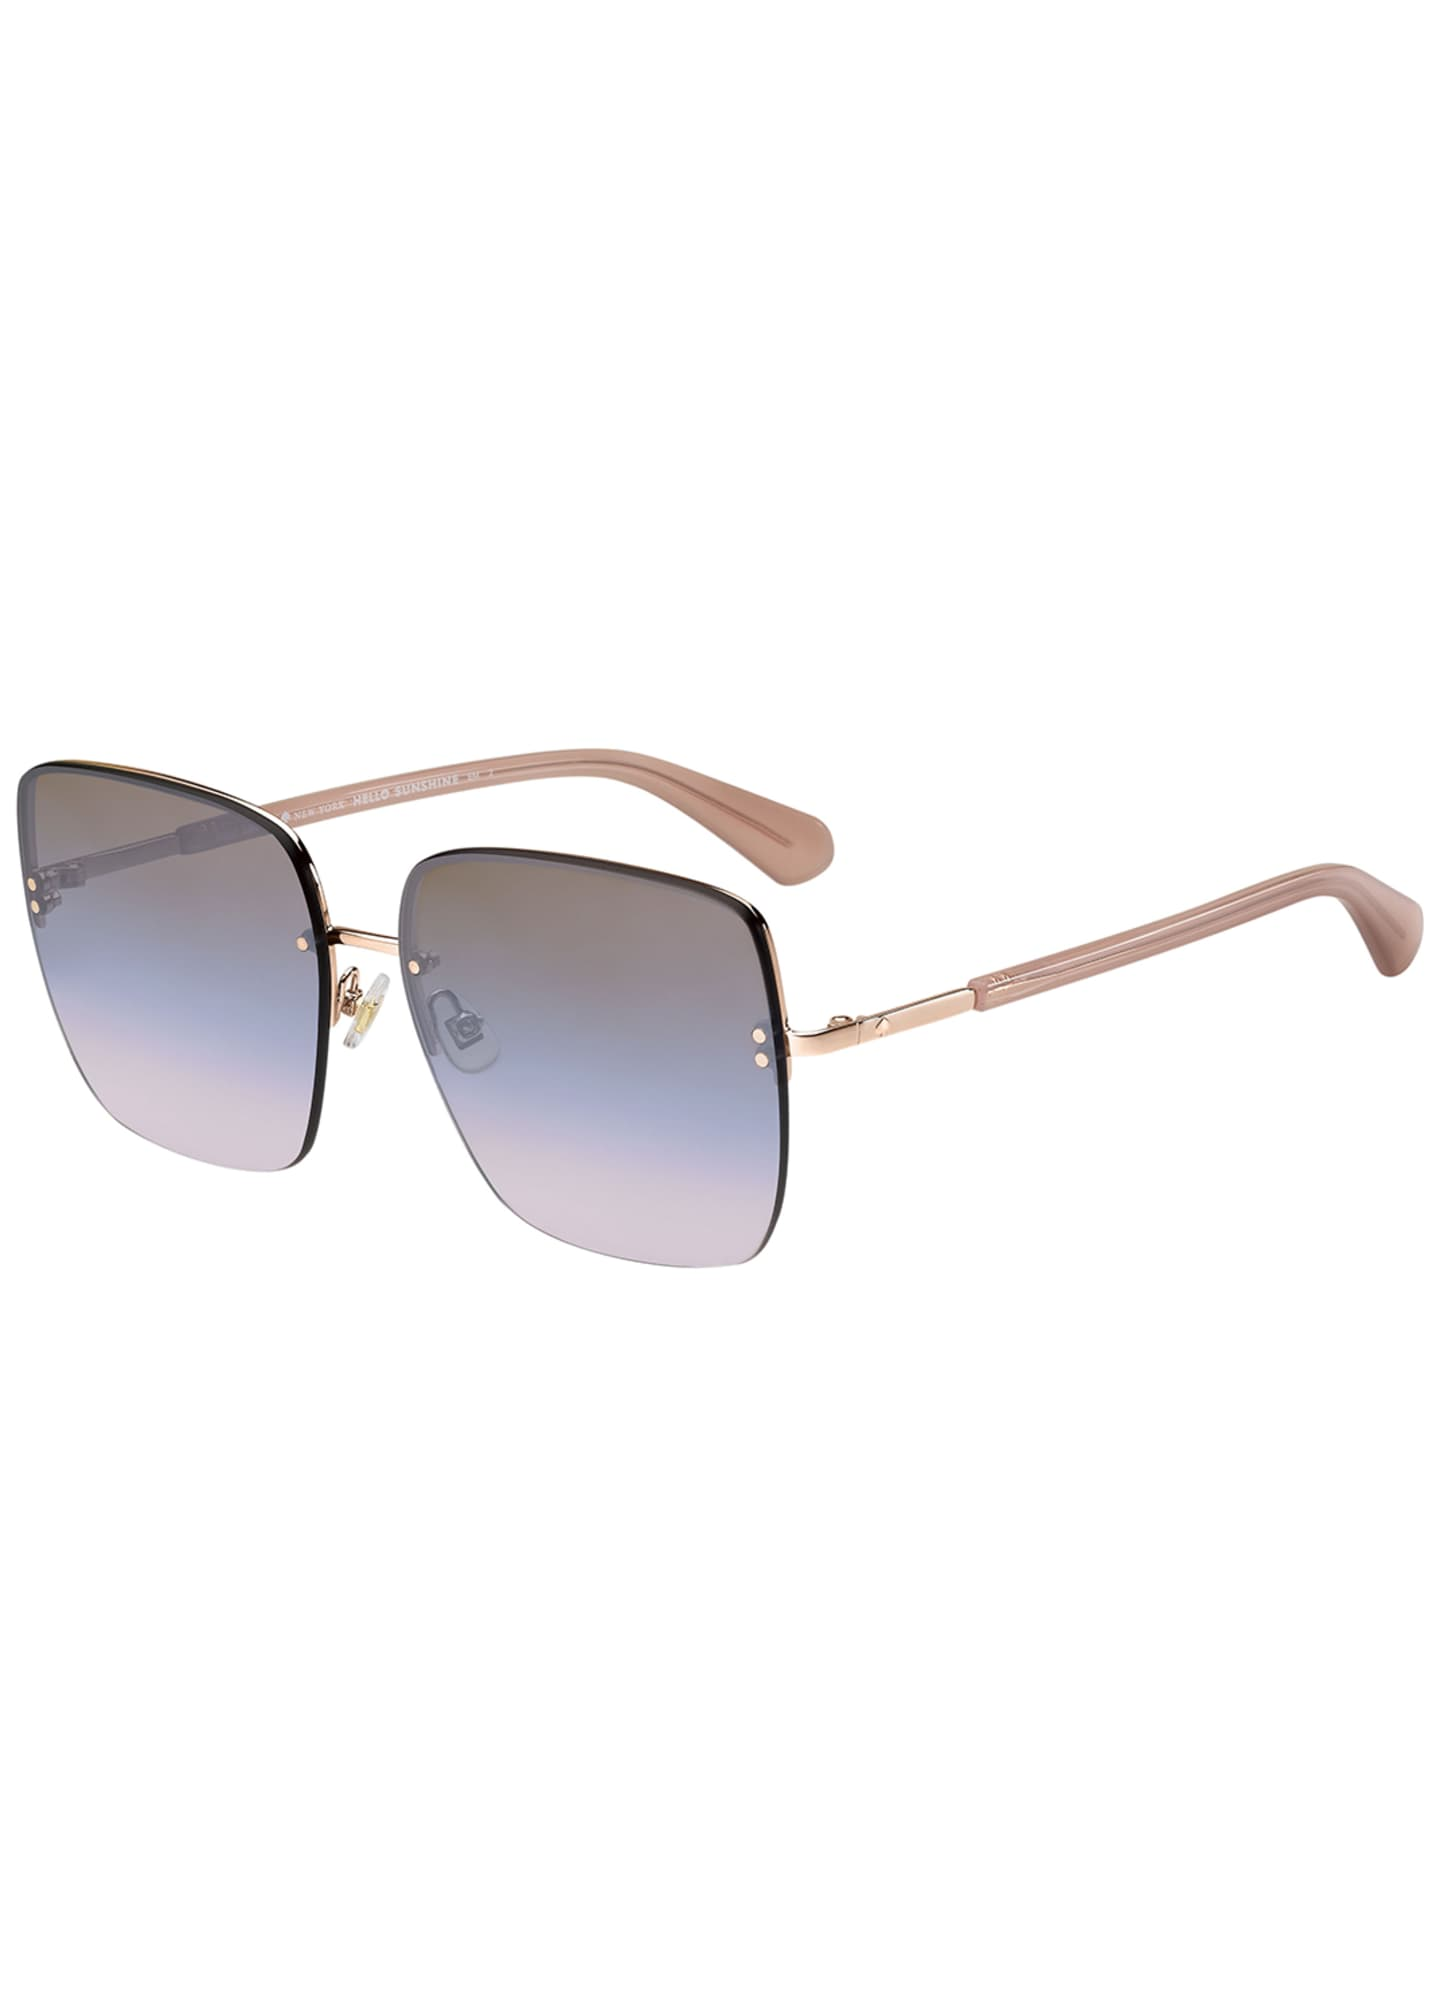 kate spade new york janays square acetate sunglasses